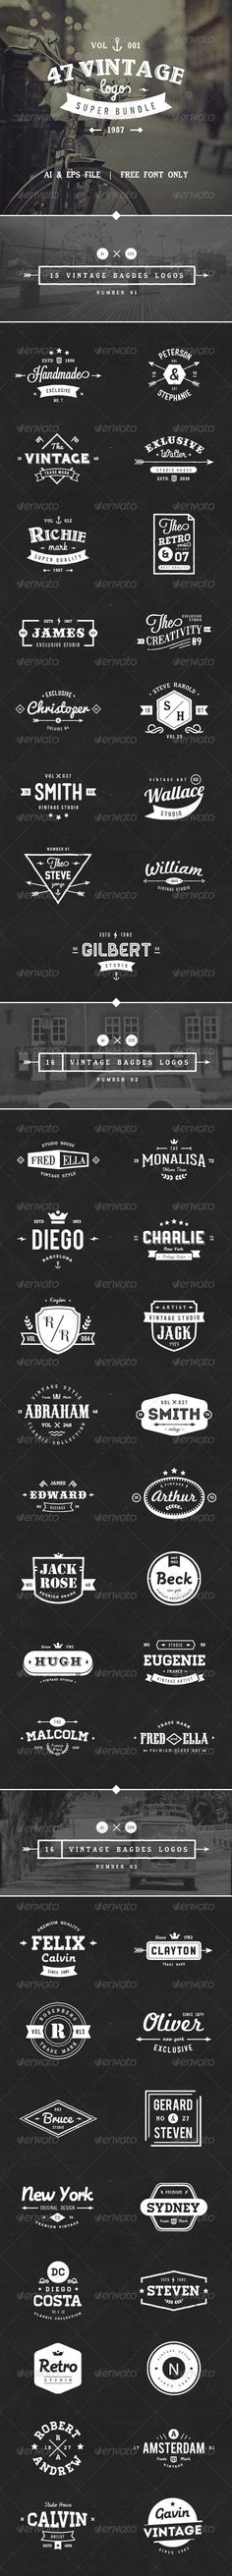 47 Vintage Logos Bundle Template | Buy and Download: http://graphicriver.net/item/47-vintage-logos-bundle/8411488?ref=ksioks: